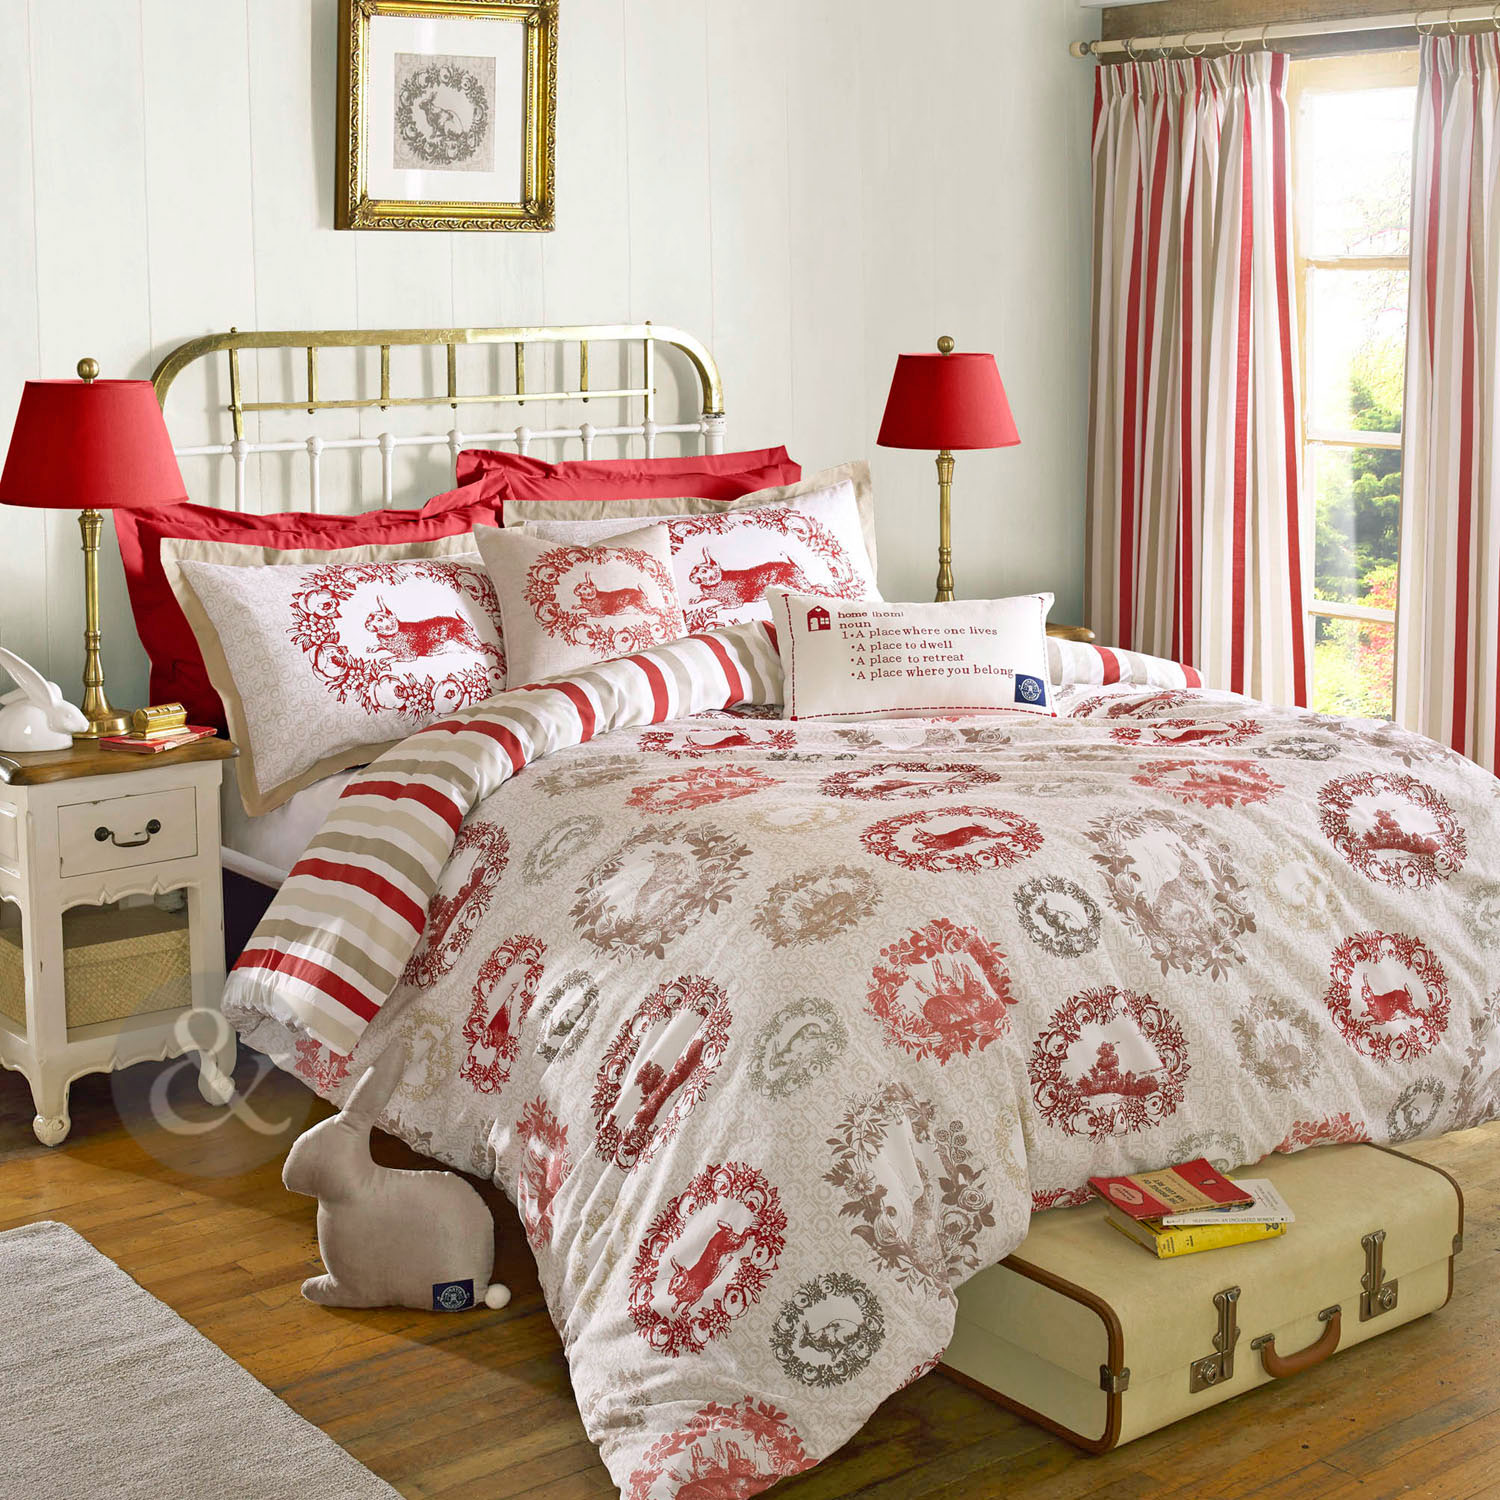 Blue and white toile bedding - Awesome Decorative Pattern Design With Red And White Color On Pillows Bed Cover Lamps Curtains Rug